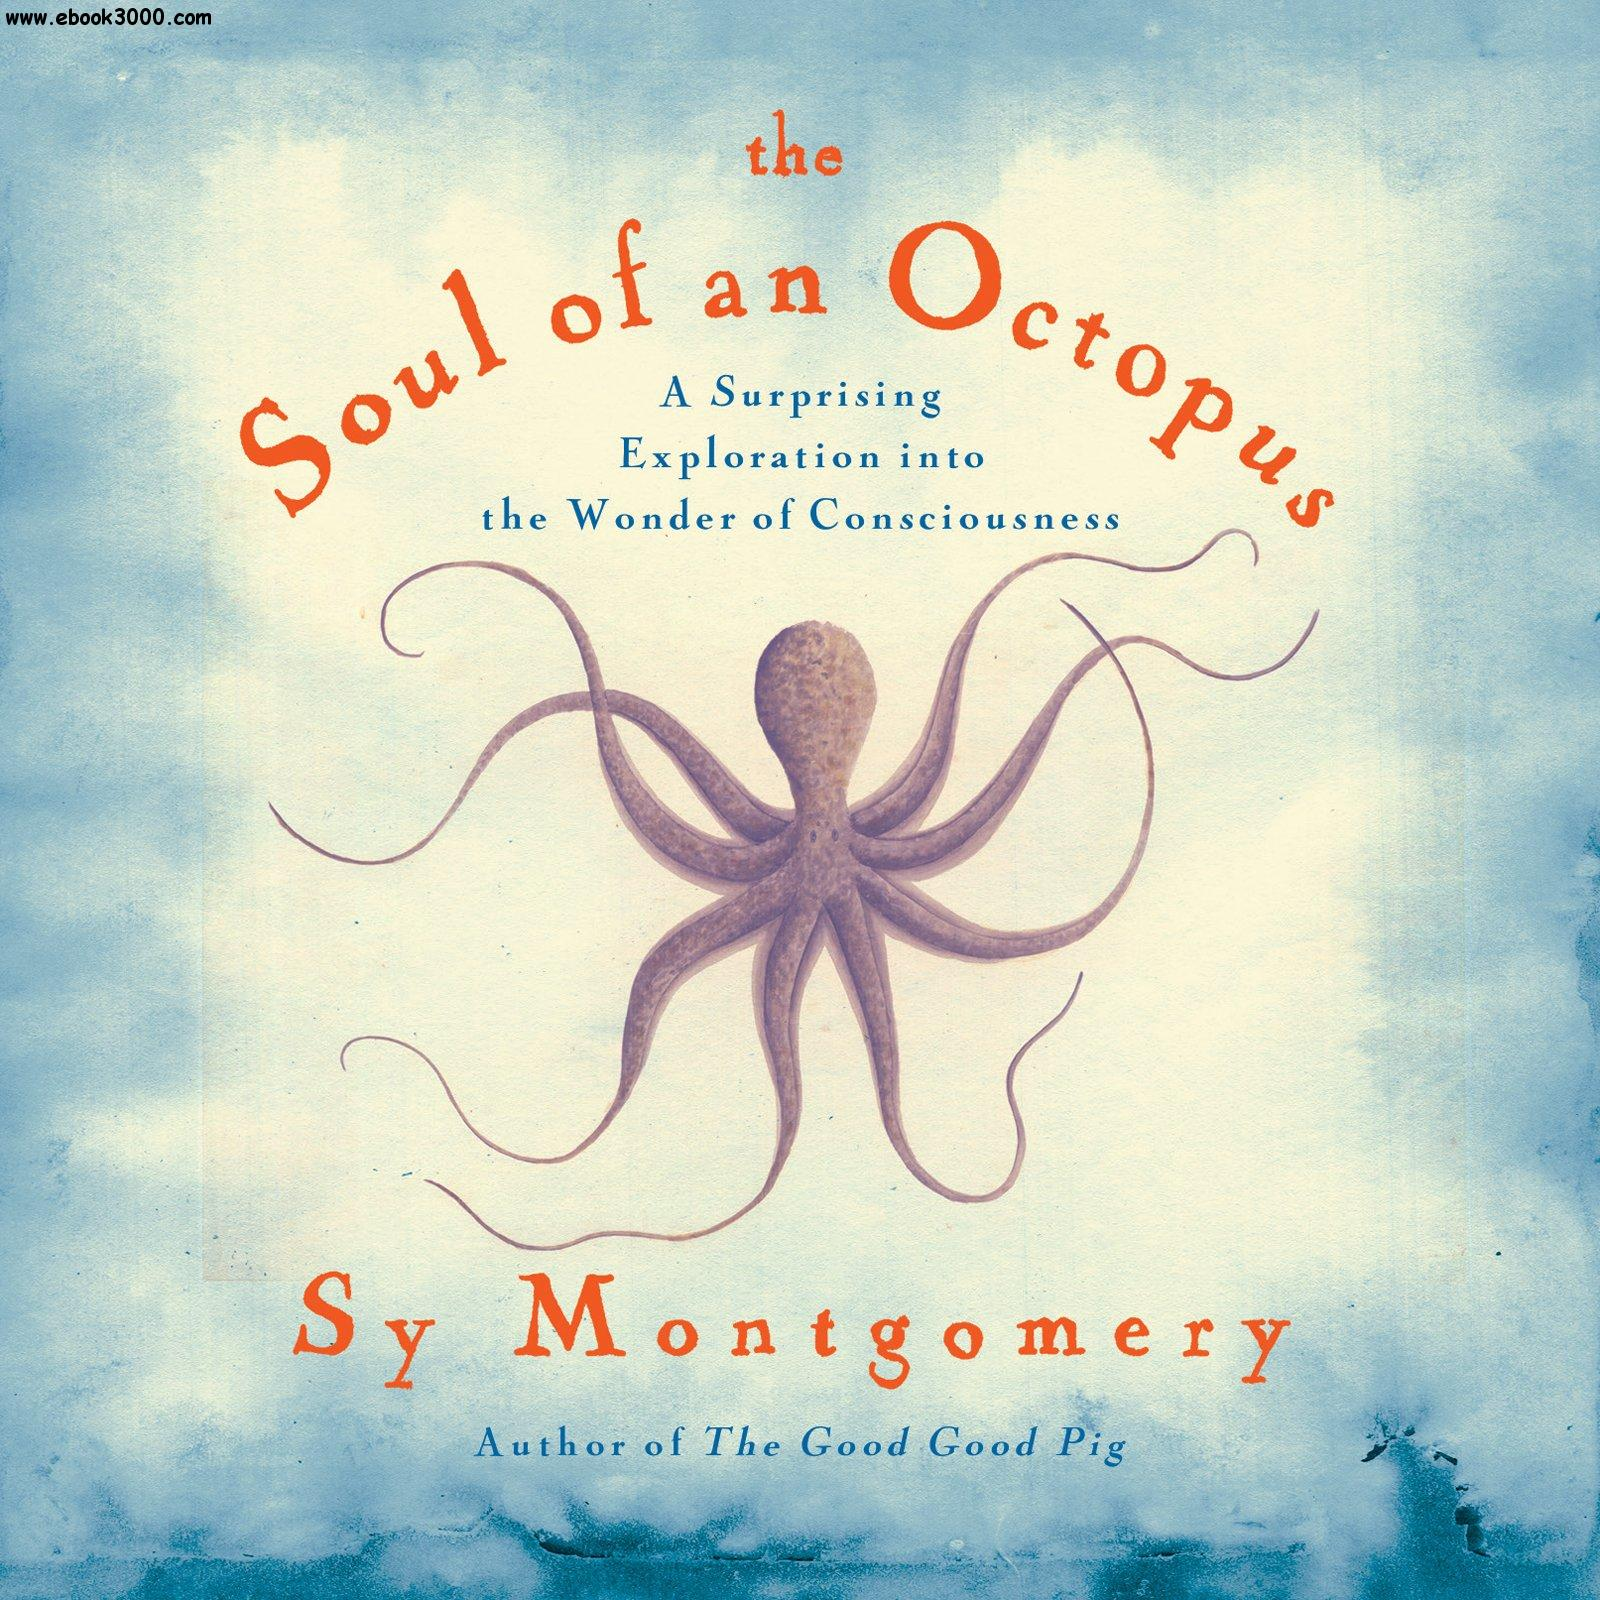 The Soul of an Octopus: A Surprising Exploration into the Wonder of Consciousness (Audiobook, repost)